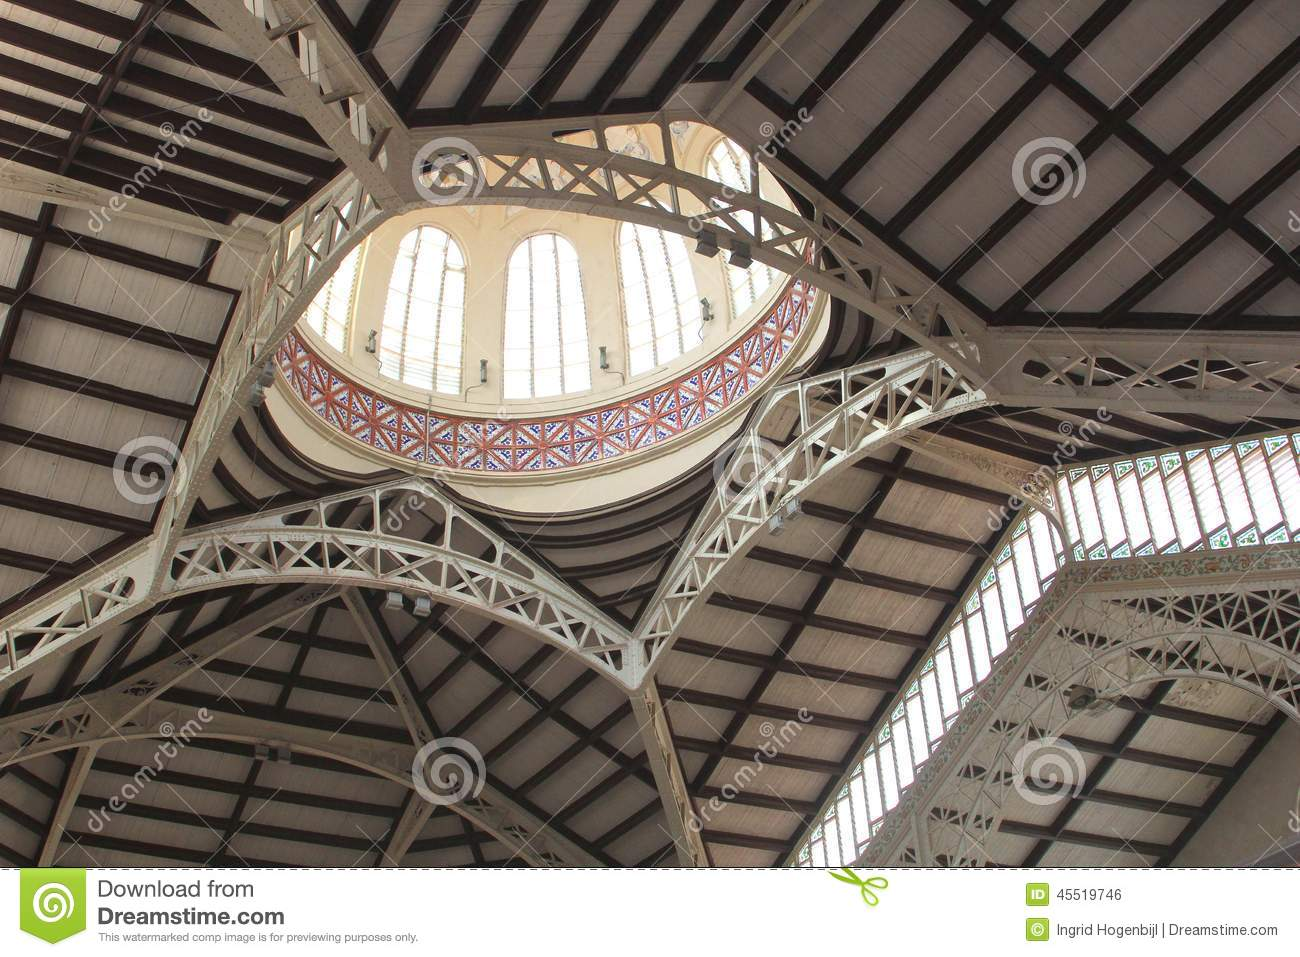 Ceiling Of The Central Market In Art Nouveau Style, Valencia, Spain Stock Photo - Image: 45519746